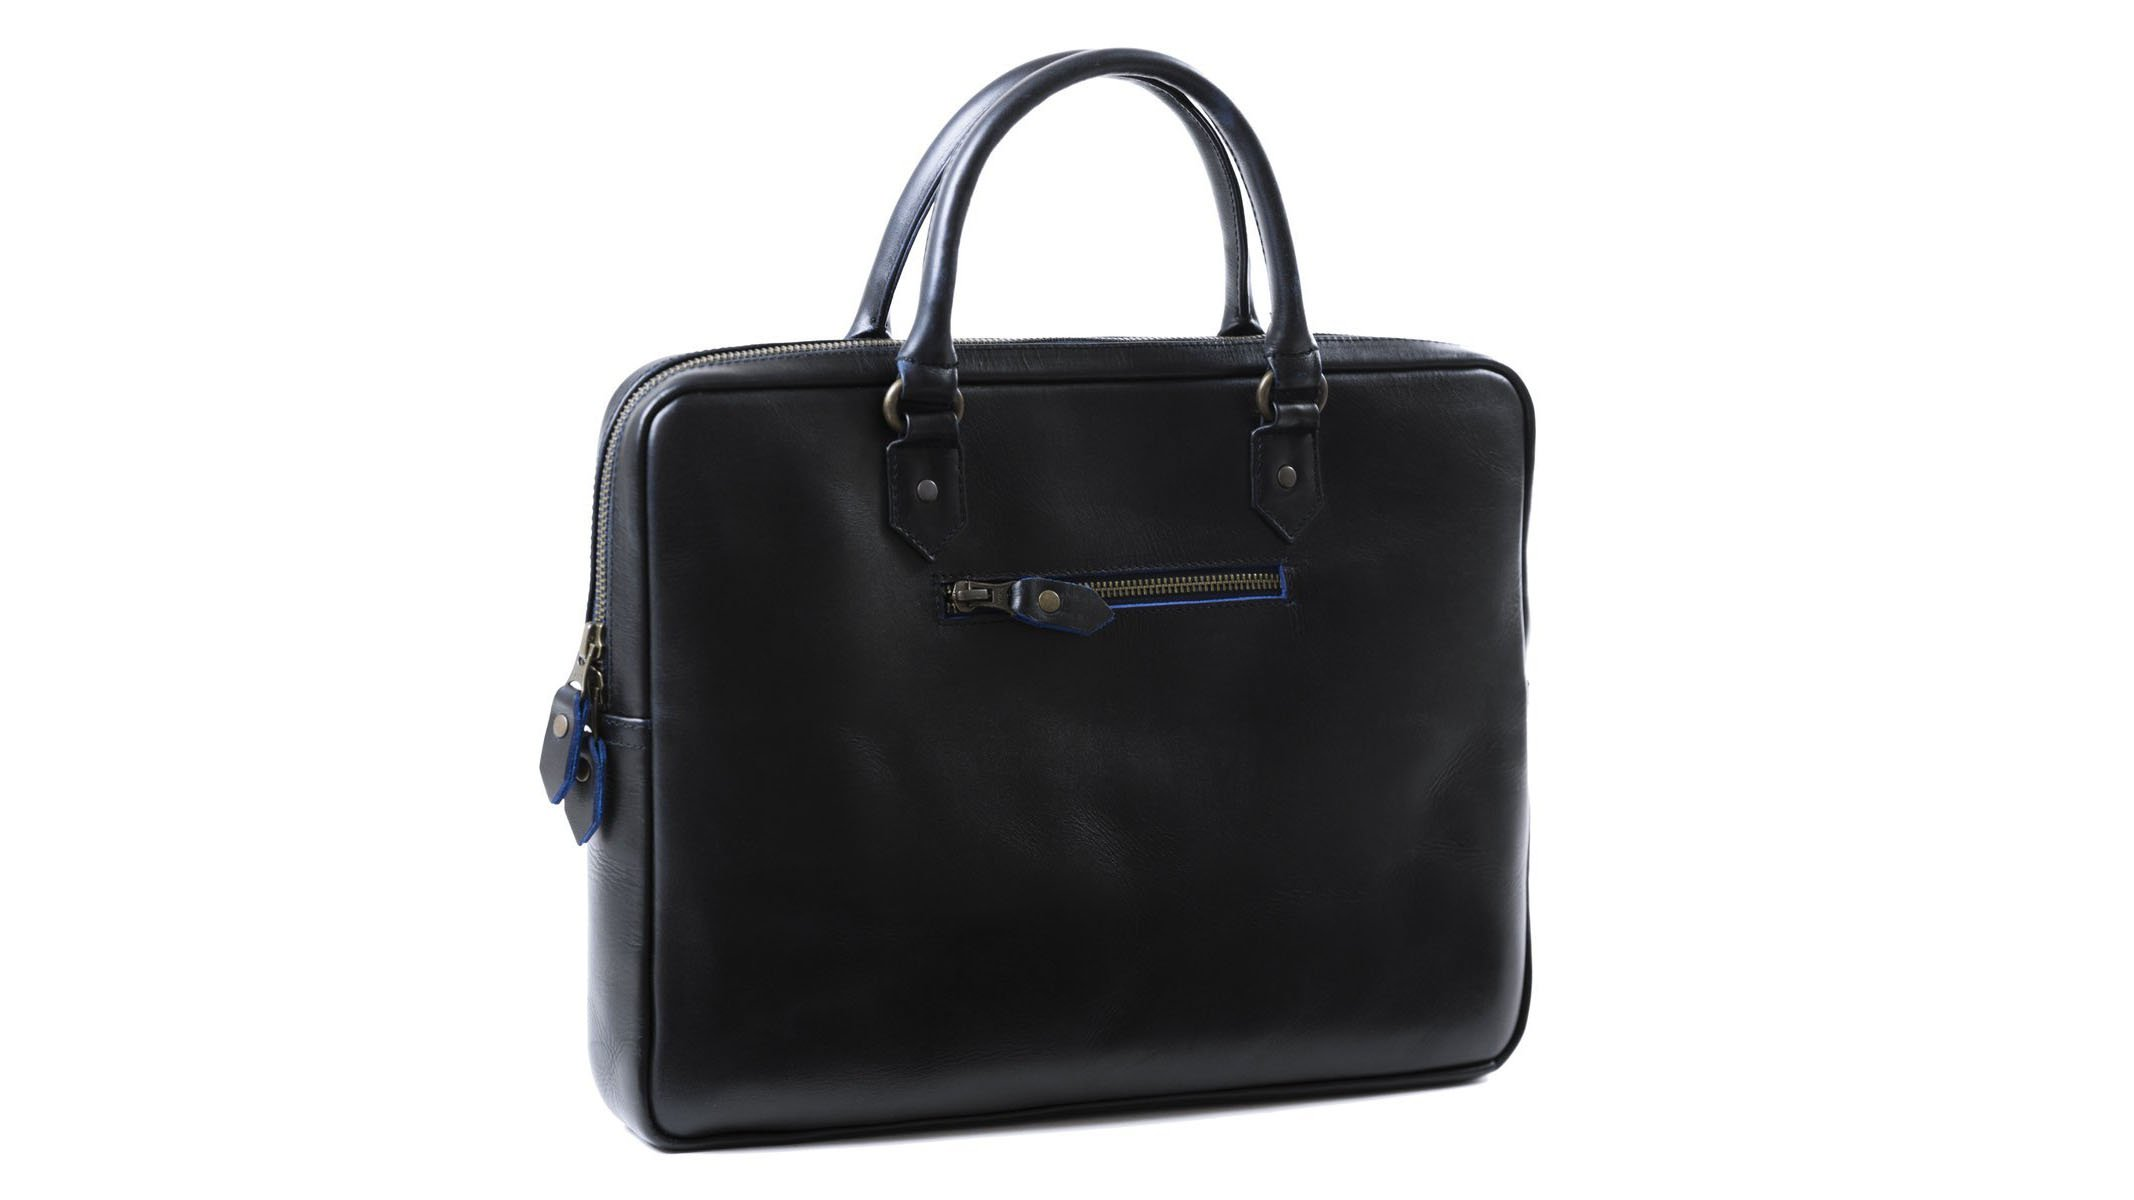 cf0604edb5f Designed for the stylish entrepreneur, Buckle & Seam's laptop bag's looks  couldn't be much further from the average. Available in brown or midnight  blue ...